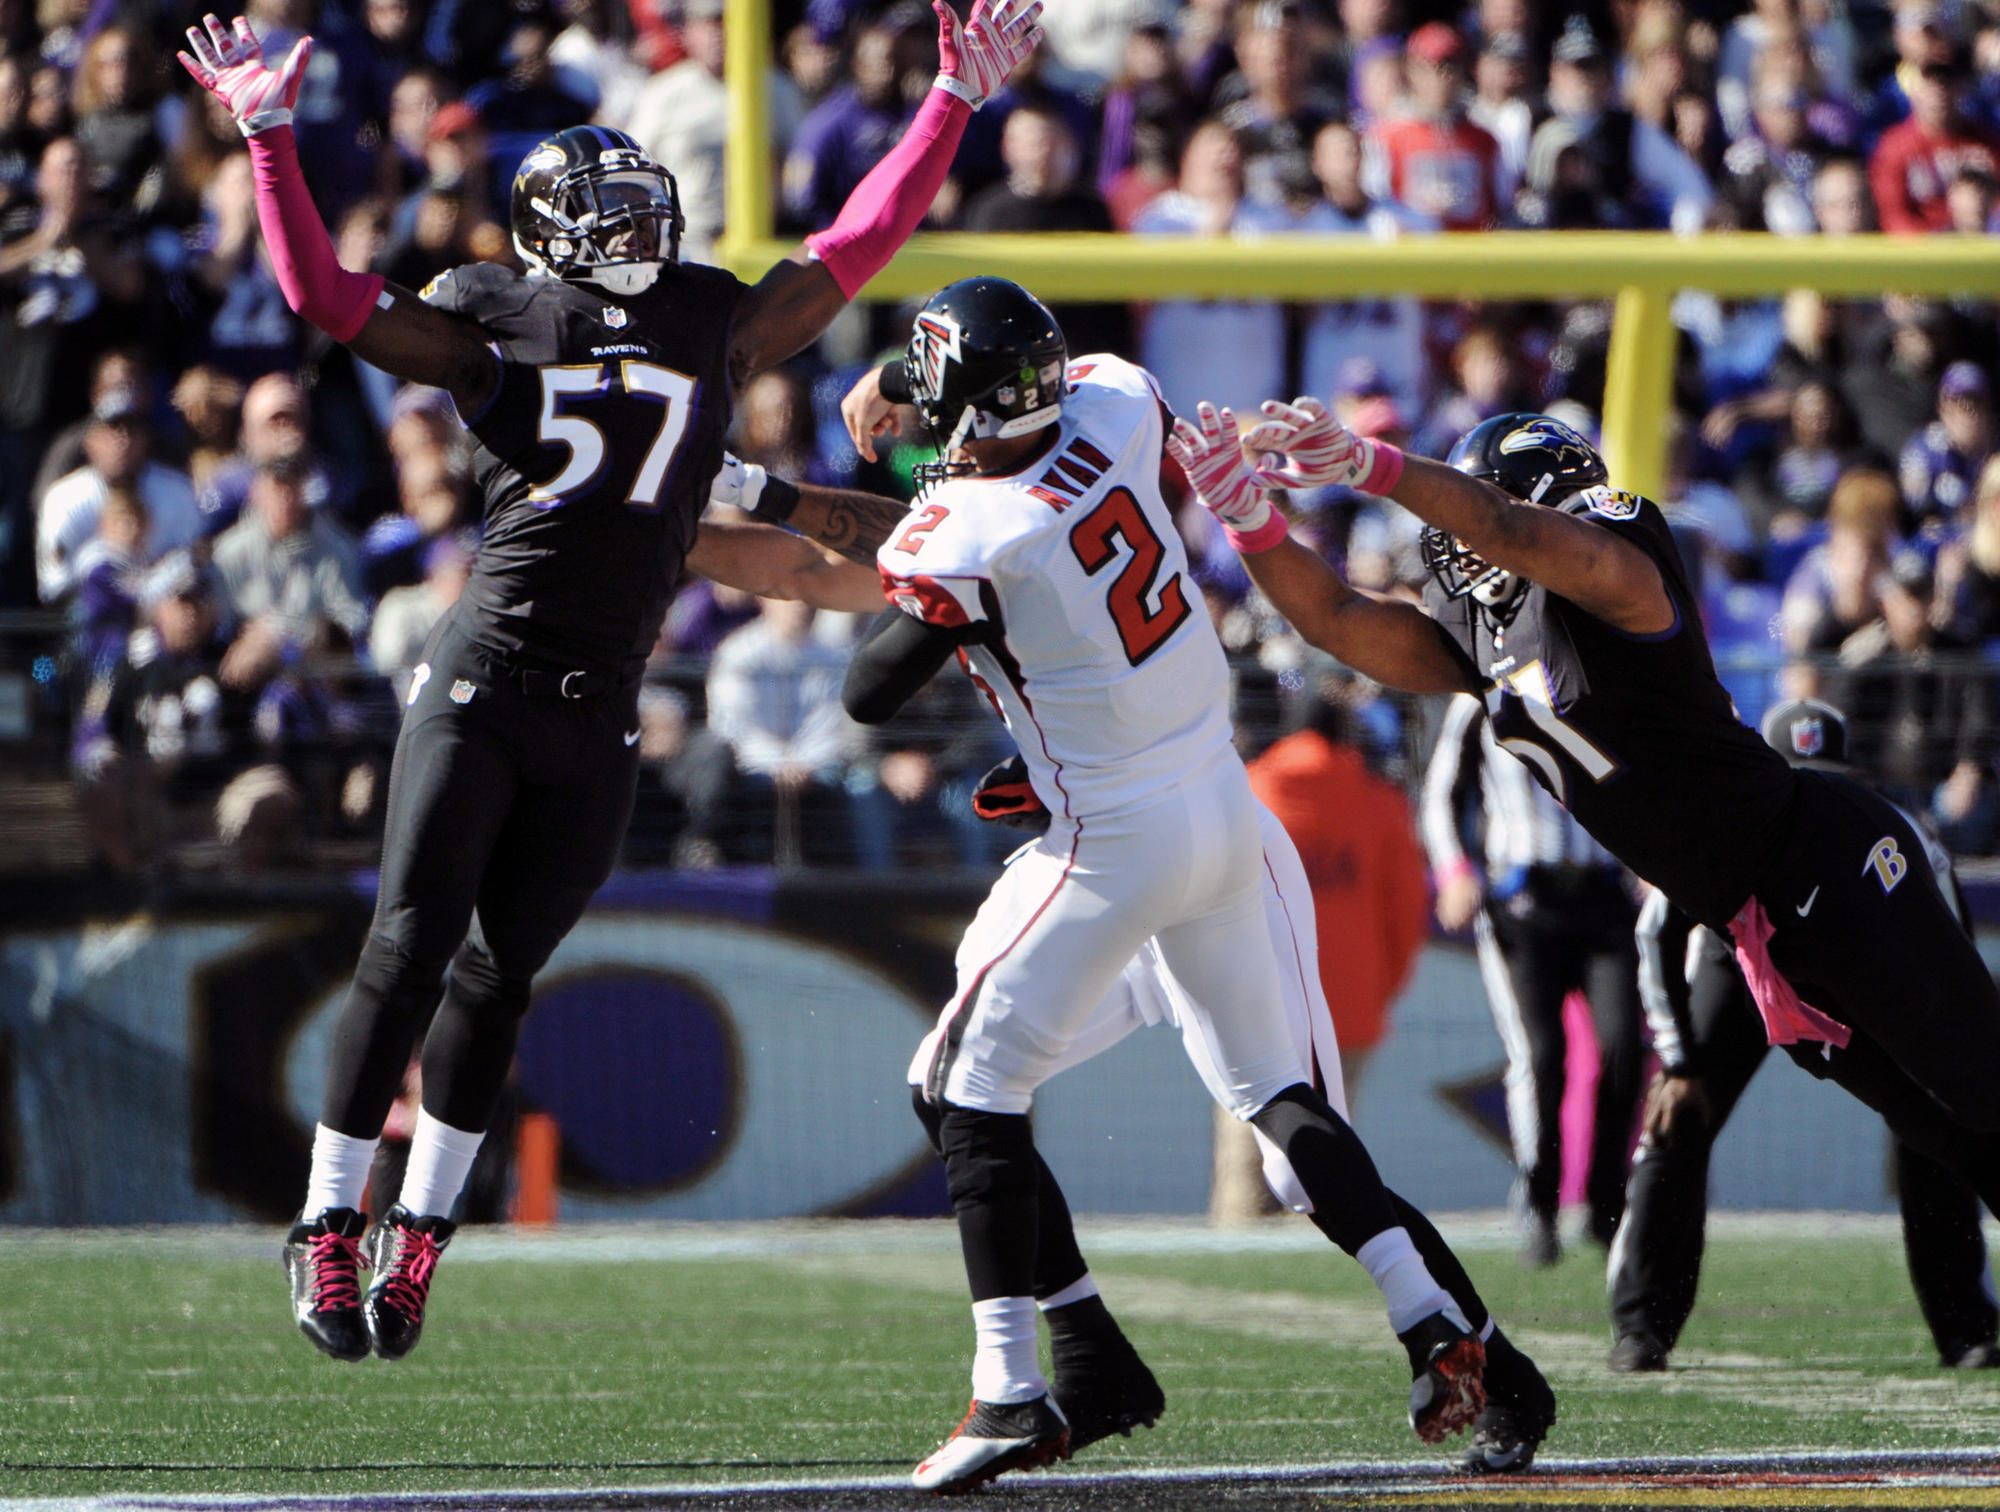 Bs-sp-ravens-falcons-scouting-report-1202